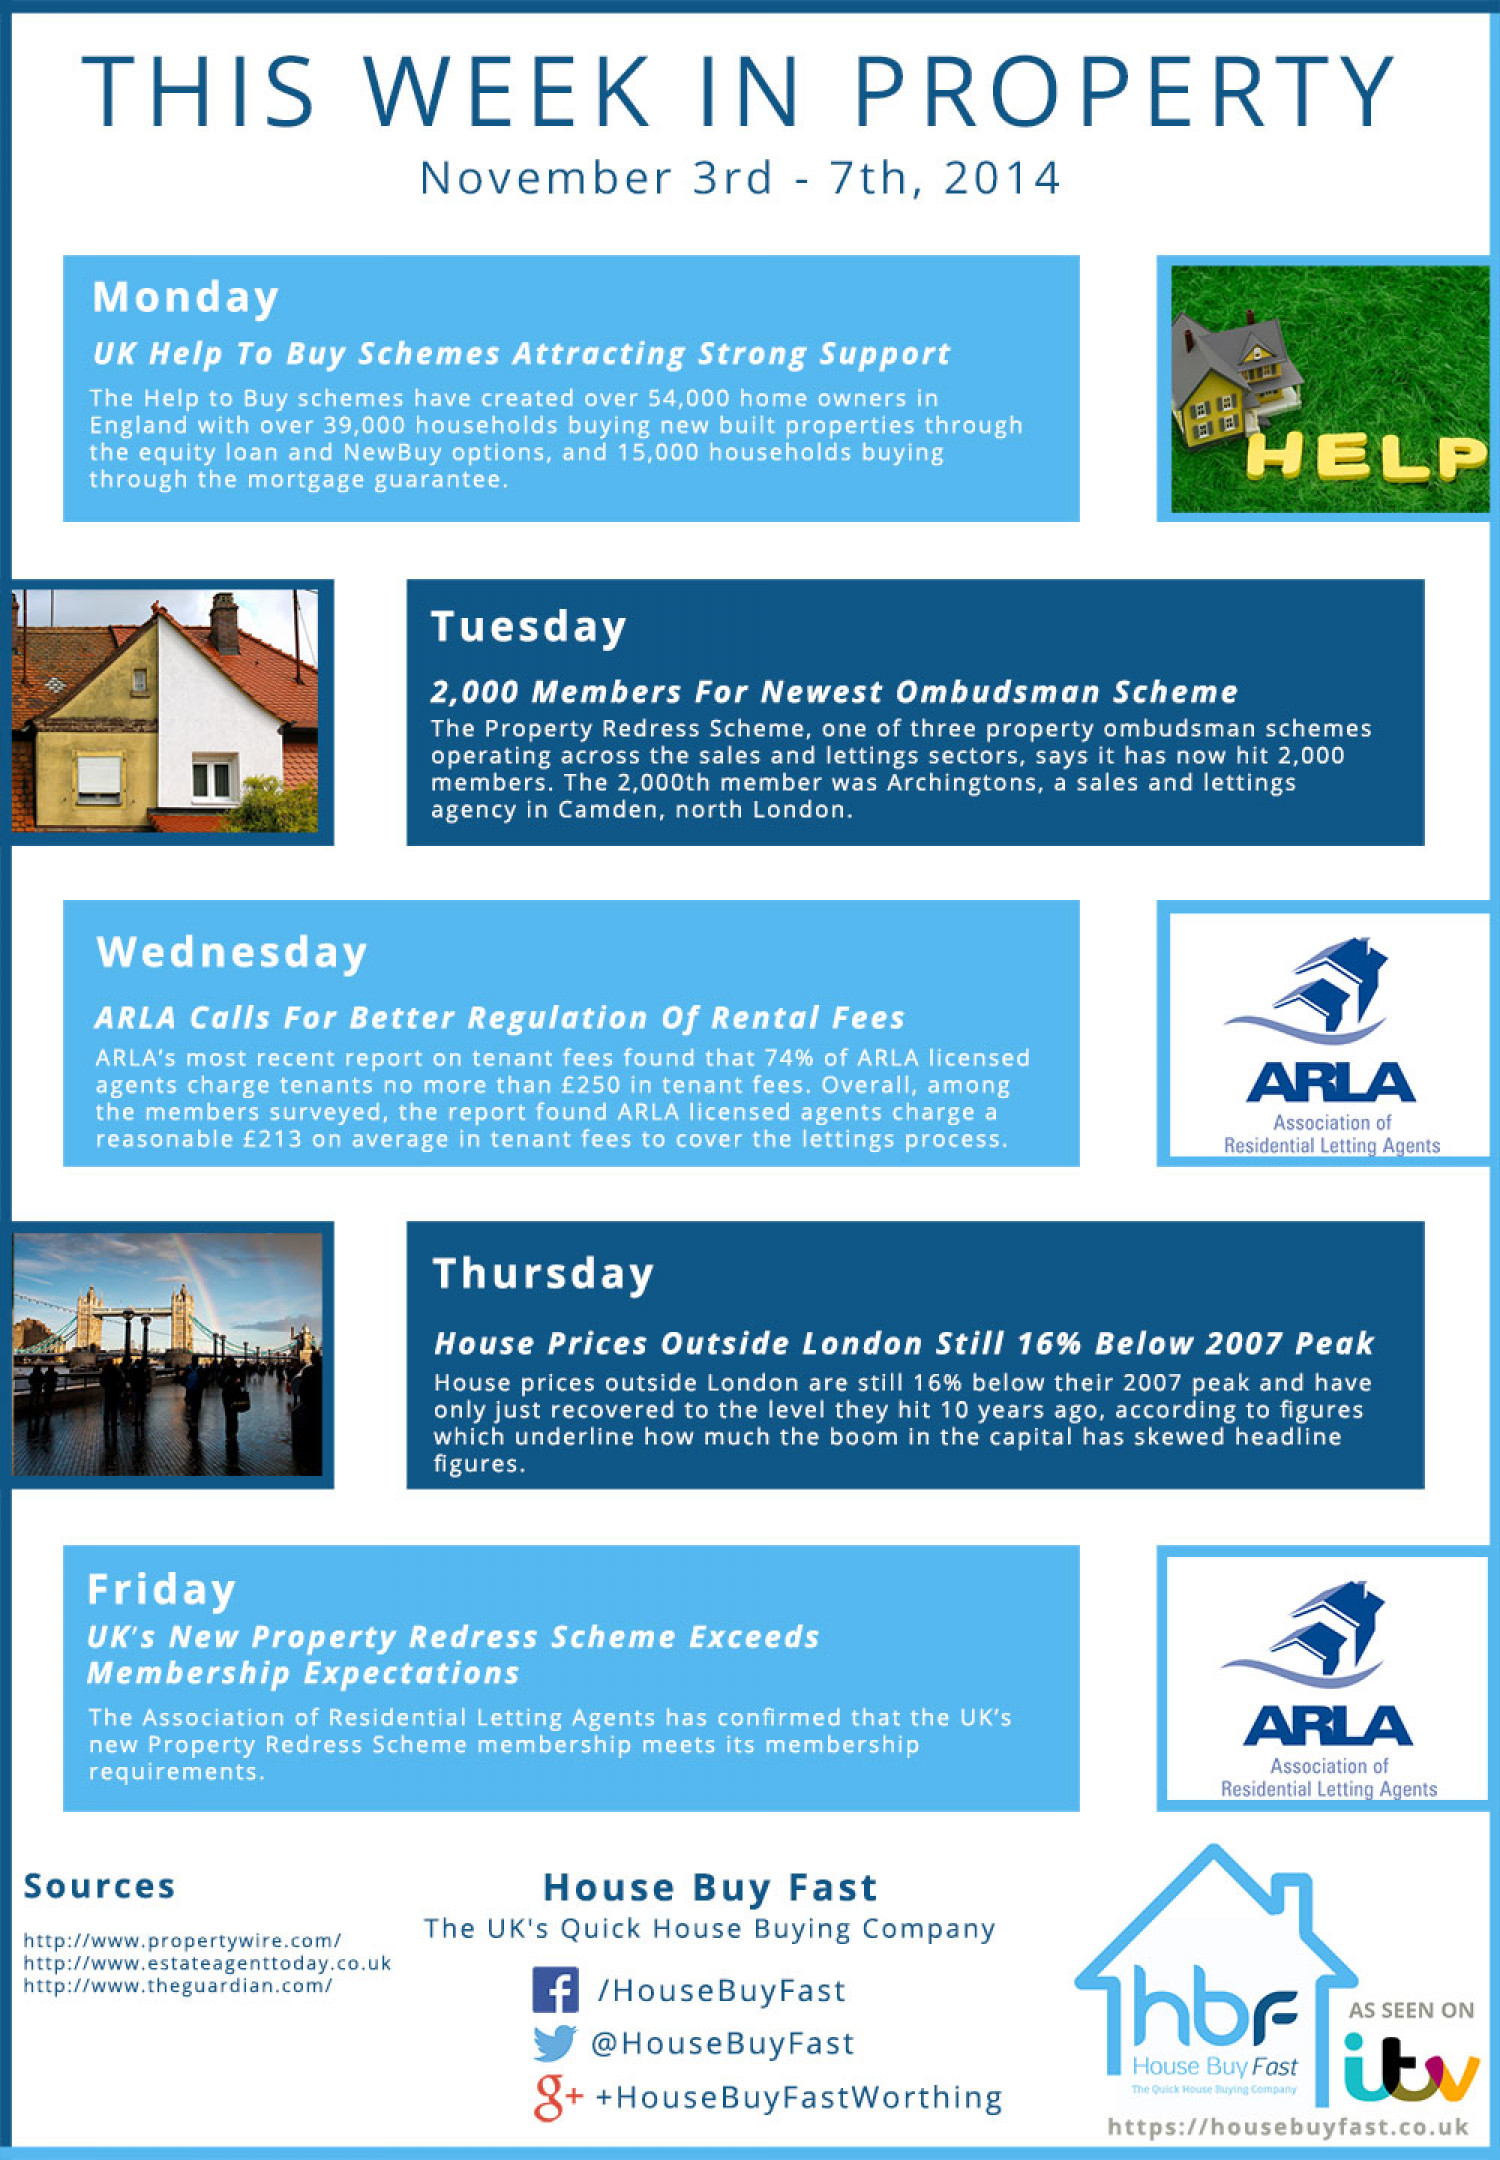 This Week In Property November 3rd - November 7th, 2014. Infographic